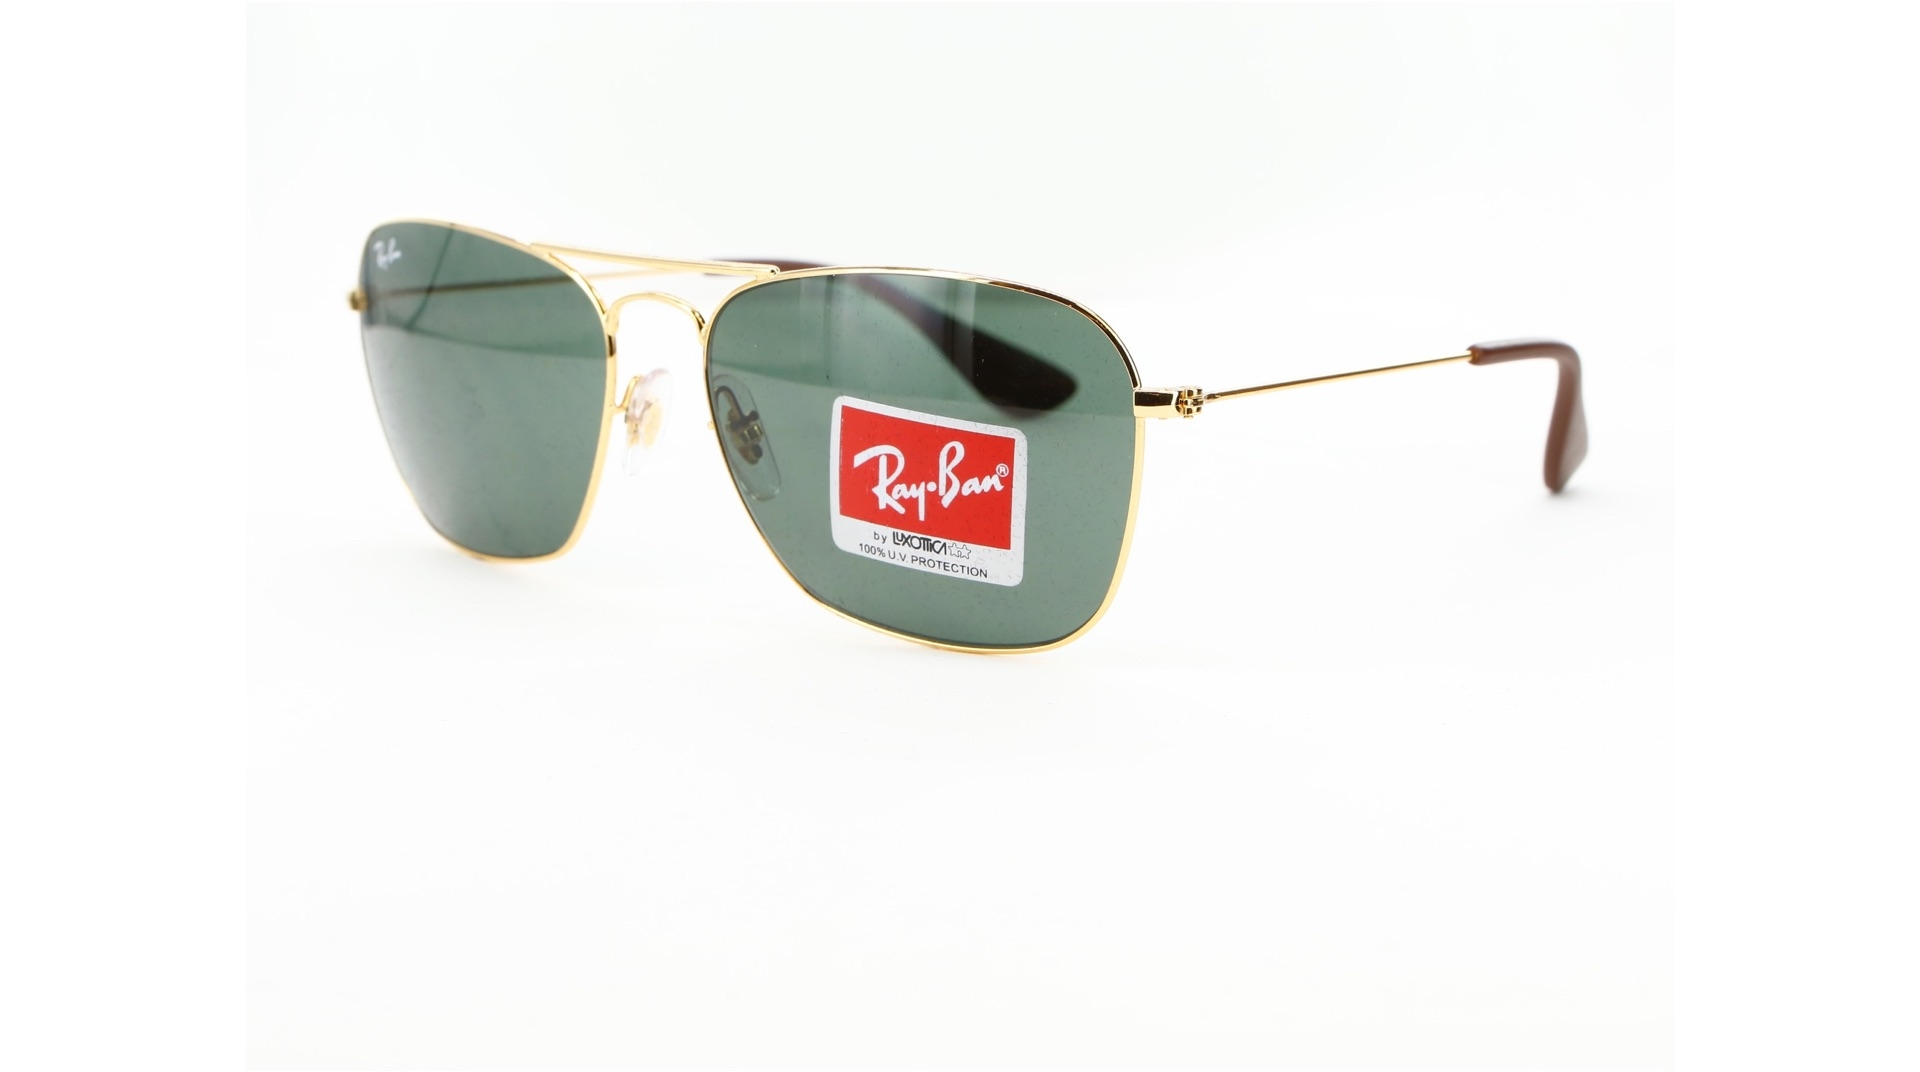 Ray-Ban - ref: 81084